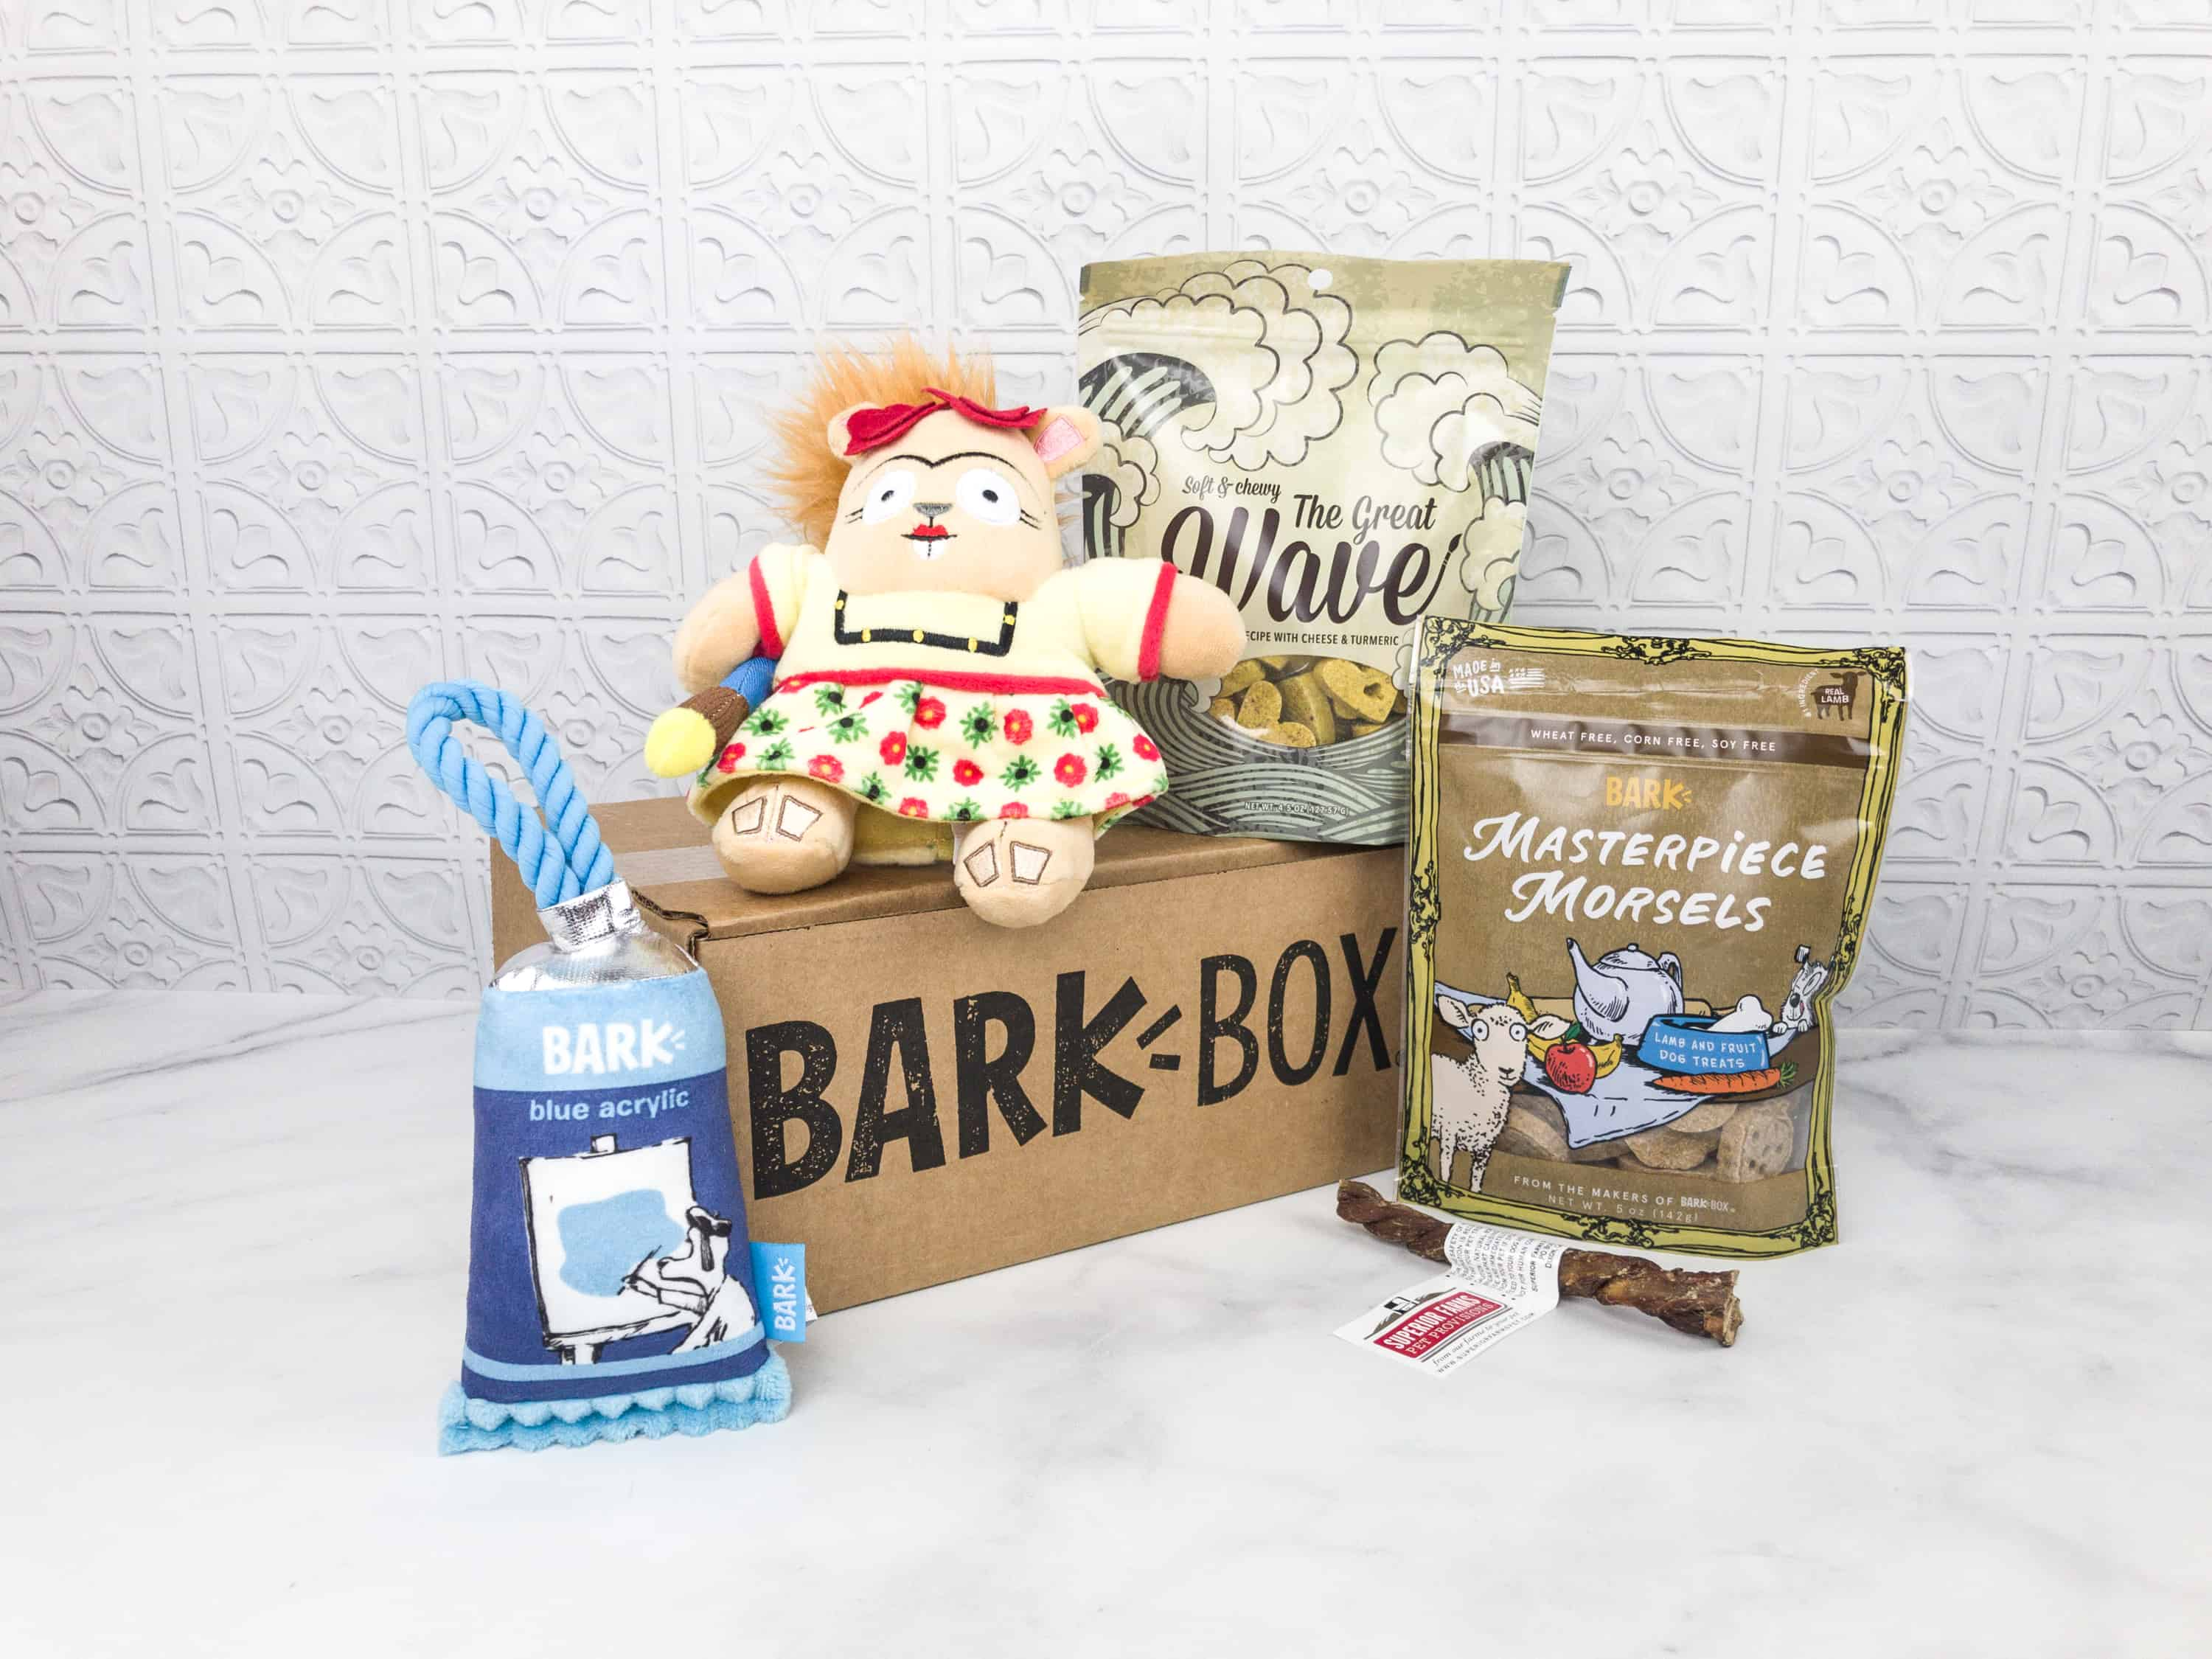 Barkbox March 2018 Subscription Box Review + Coupon